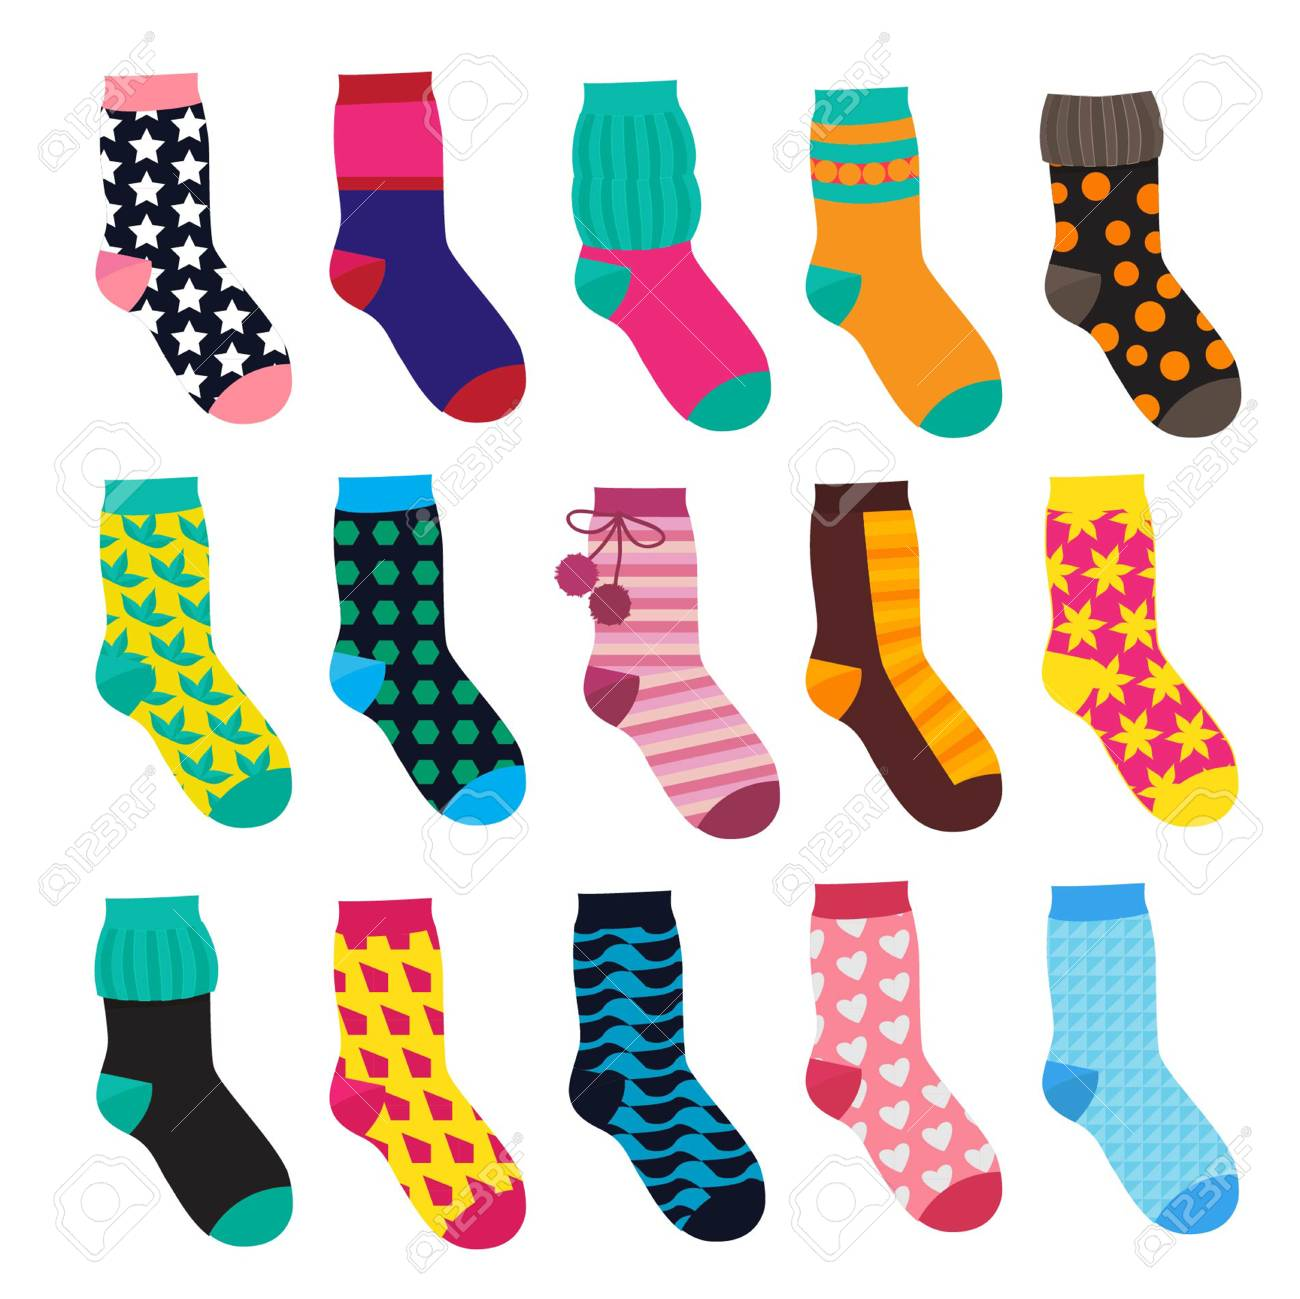 Socks in cartoon style. Elements of kids clothes. Vector illustrations isolate - 87048052